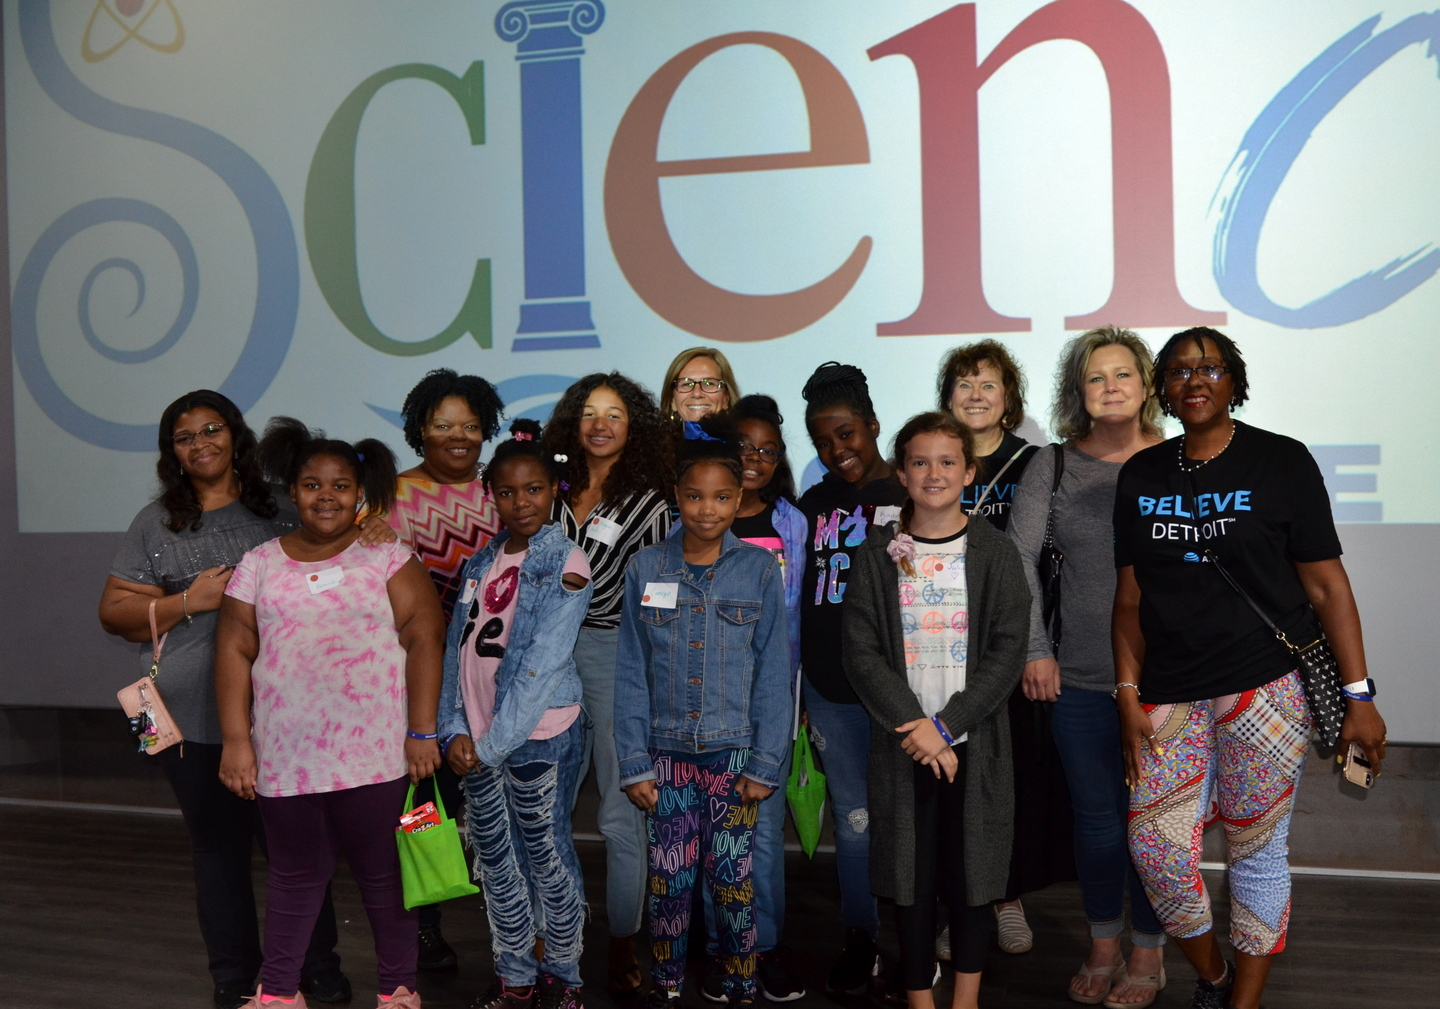 Girls in Future Technologies Day at the Michigan Science Center